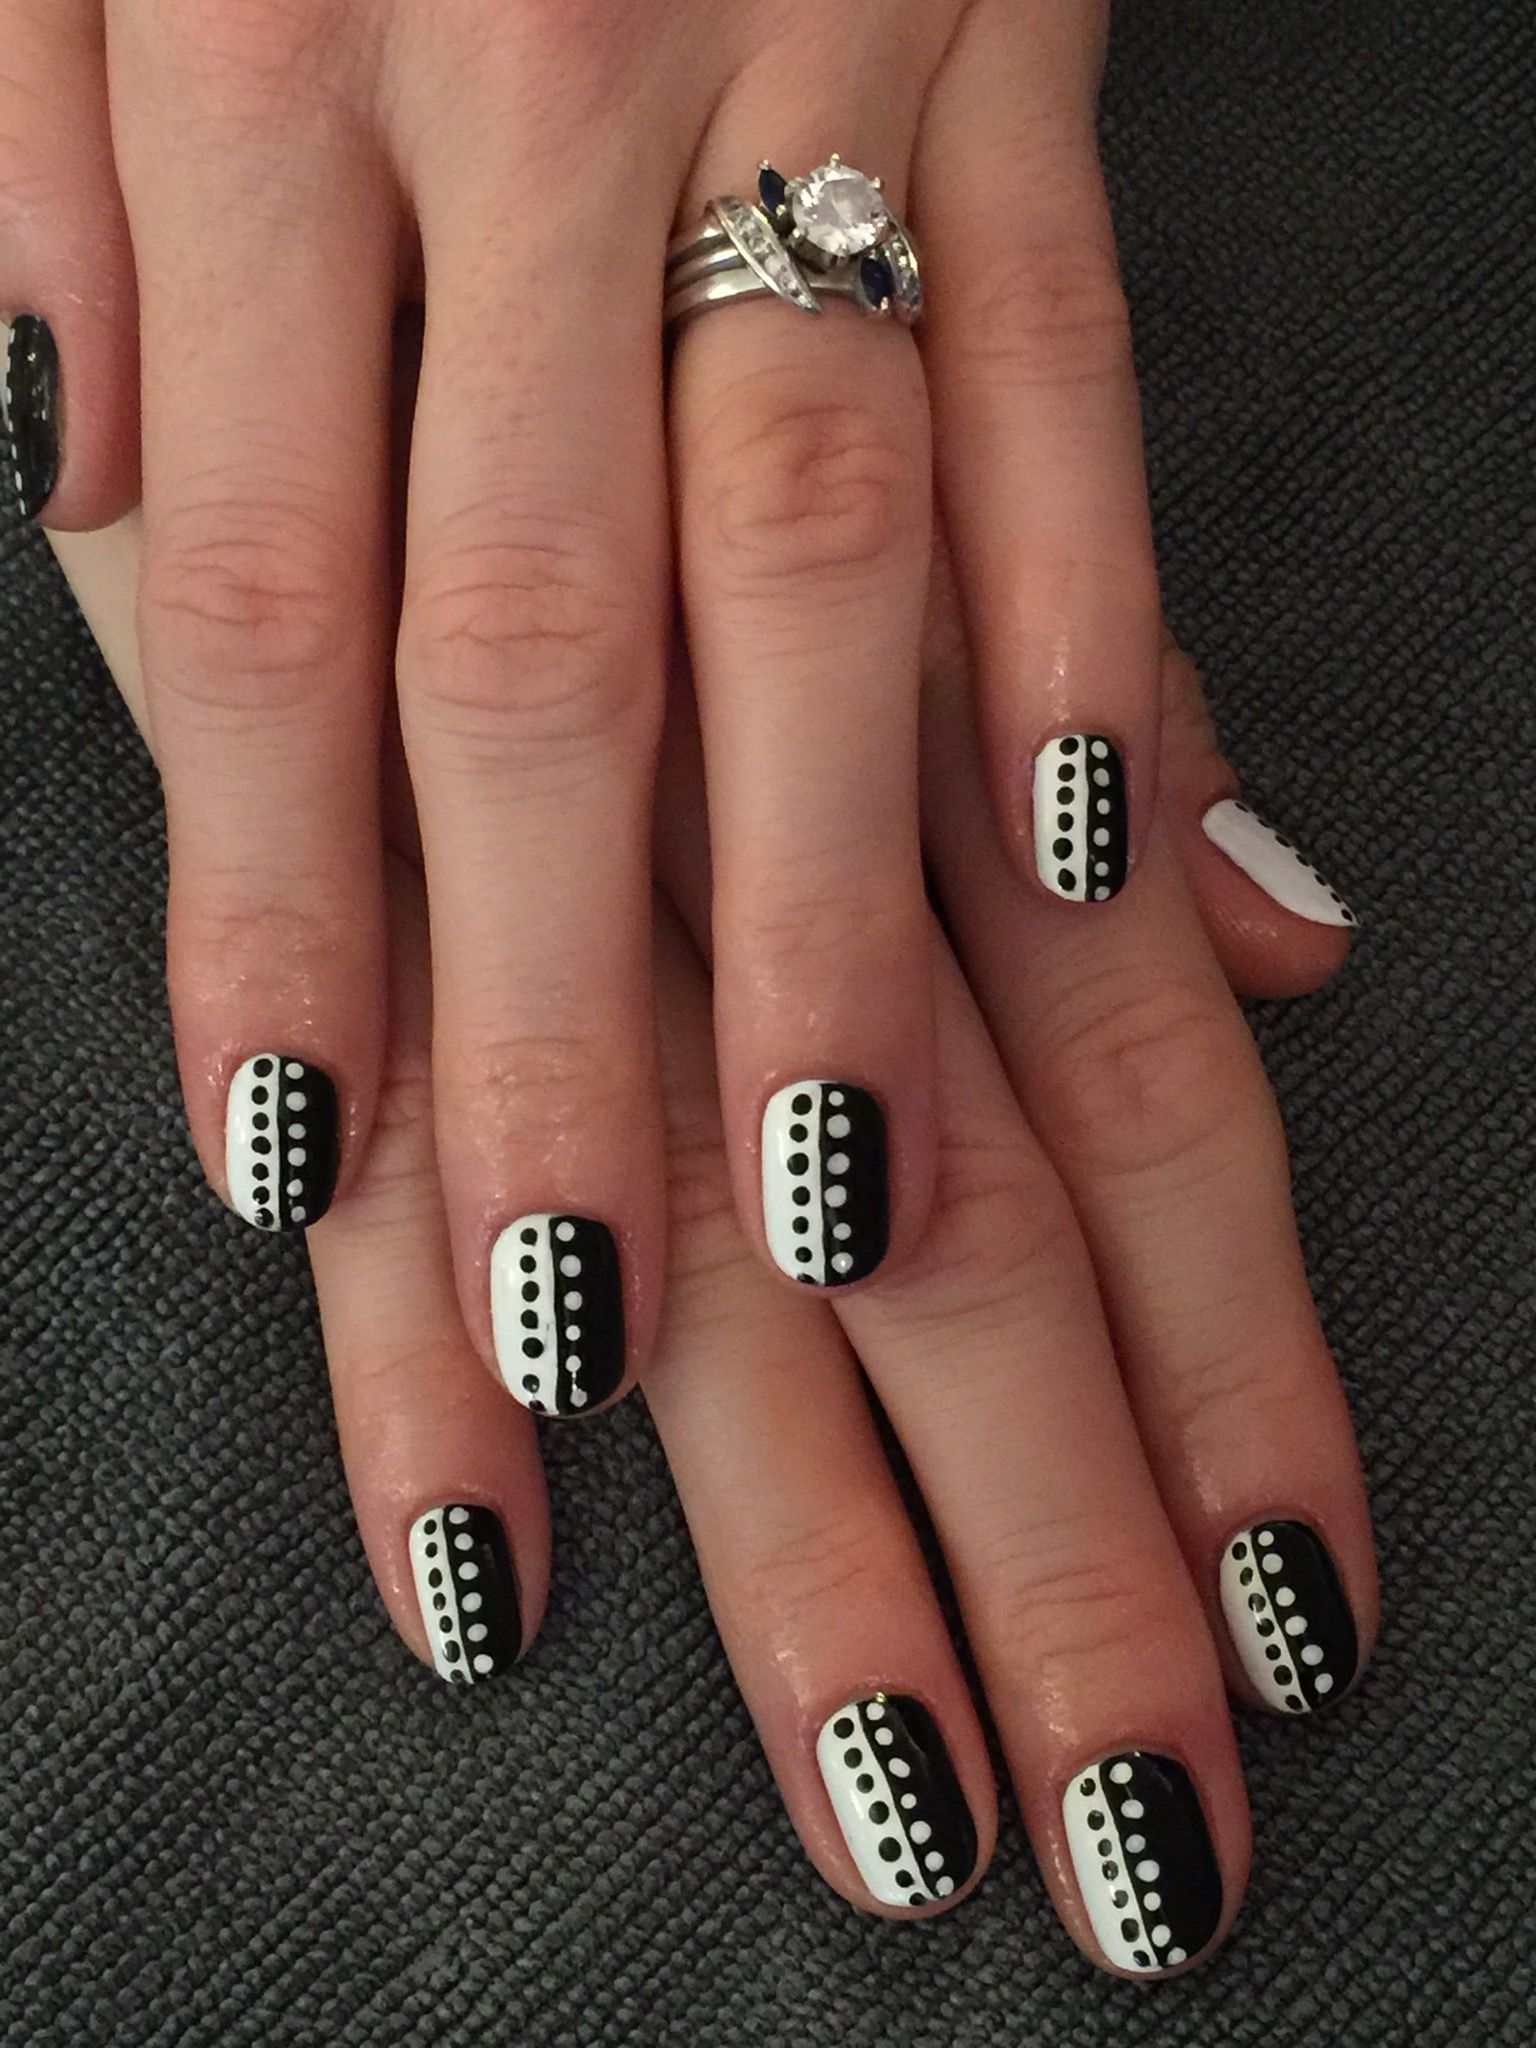 Indy 500 manicure | Seas the Day Nail Spa nails | Pinterest | Nail ...